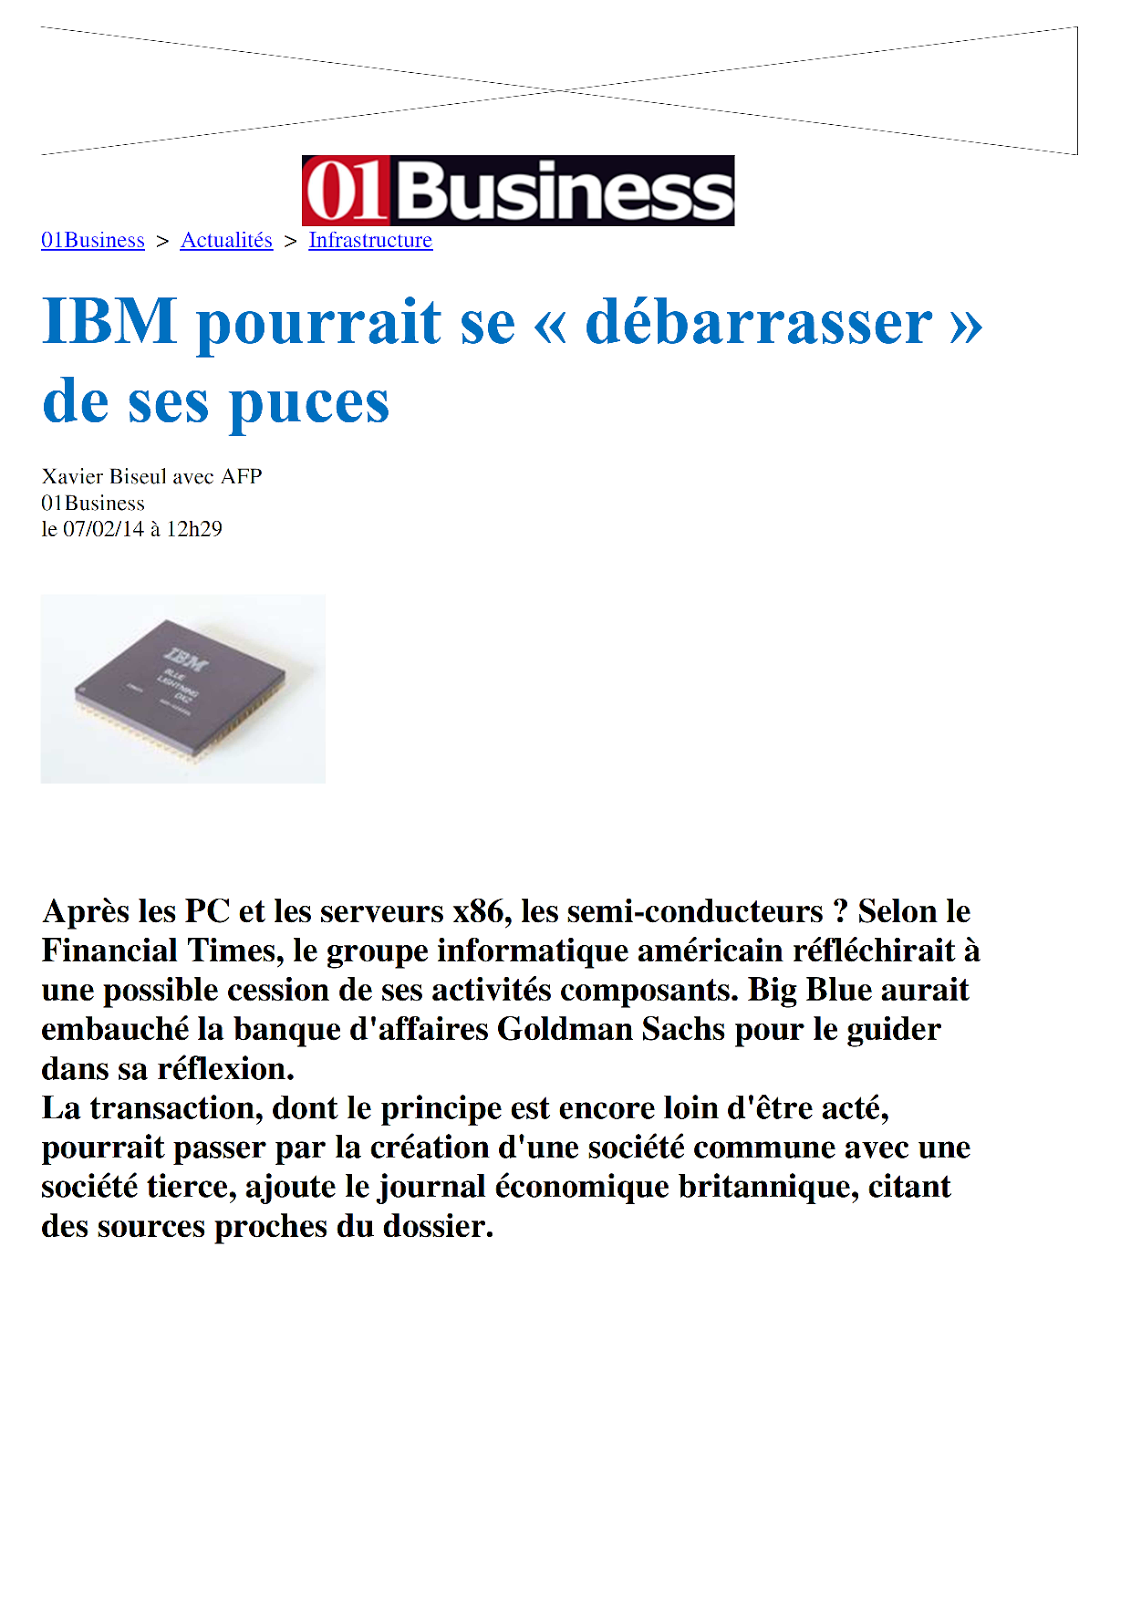 blog cftc altis le forum des salaries cftc altis ibm pourrait se debarrasser de ses puces. Black Bedroom Furniture Sets. Home Design Ideas